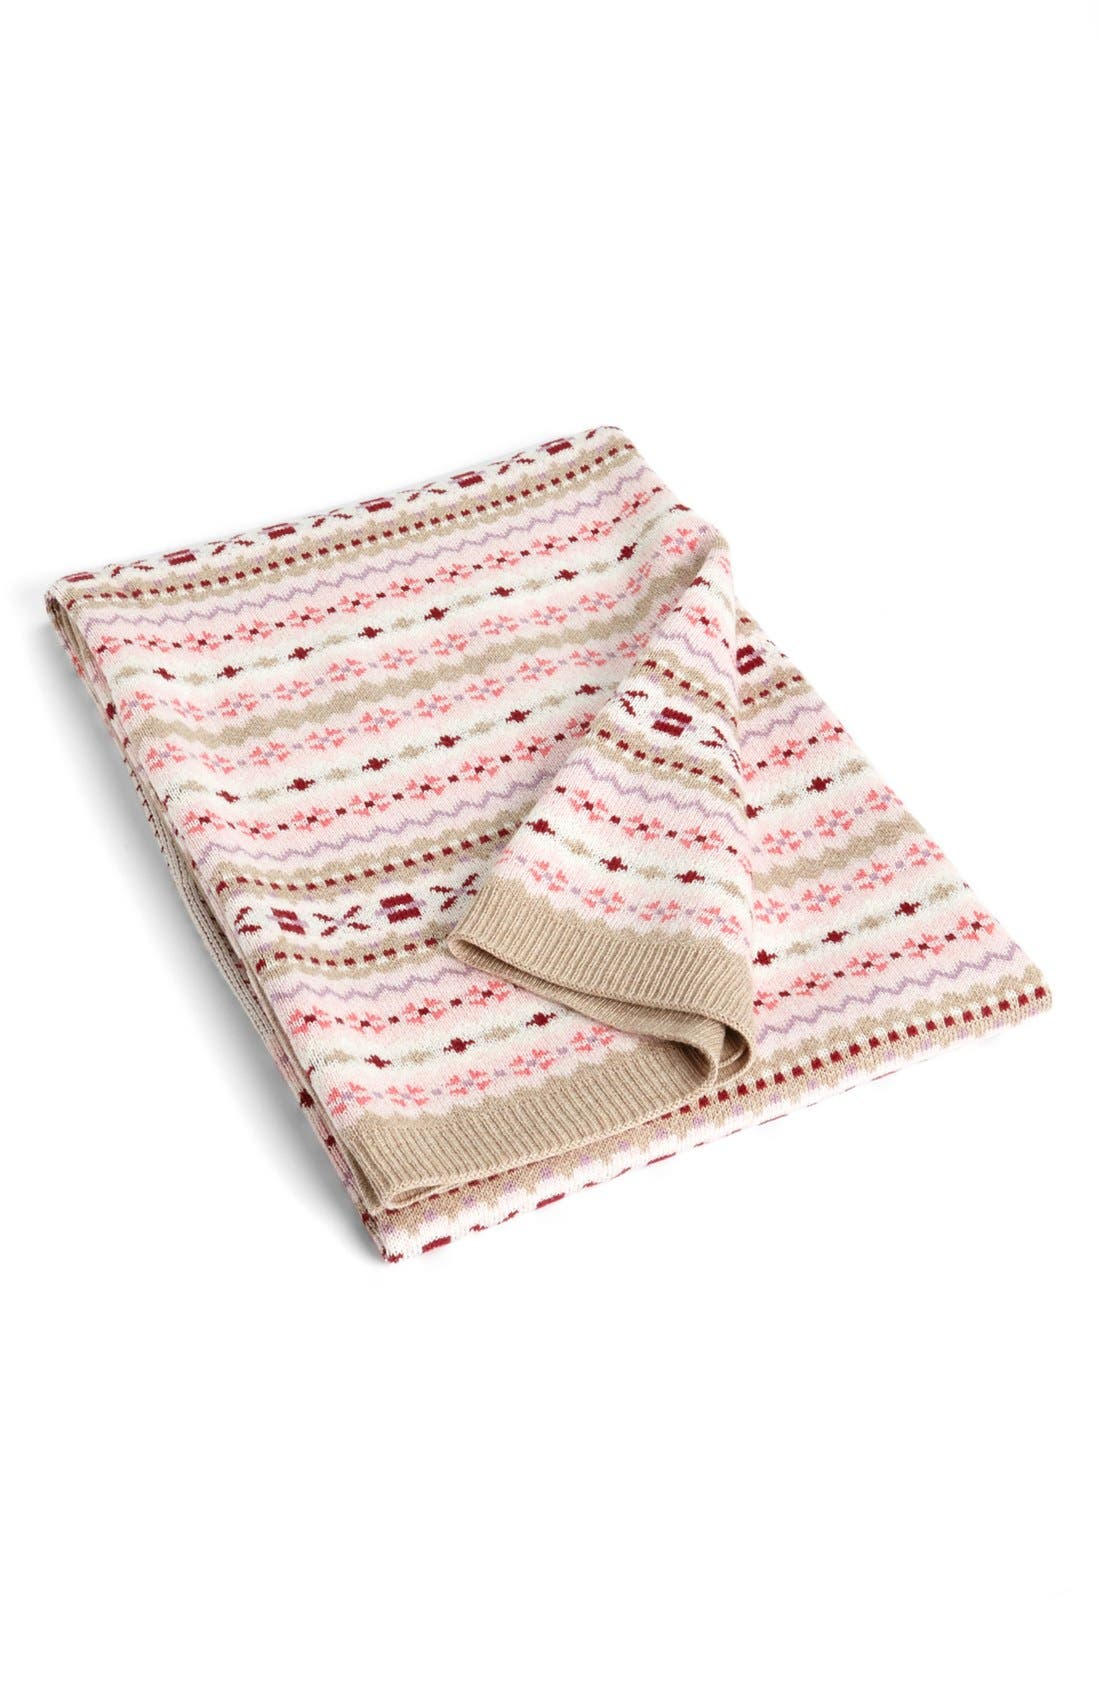 Alternate Image 1 Selected - Nordstrom Baby Cotton & Cashmere Knit Blanket